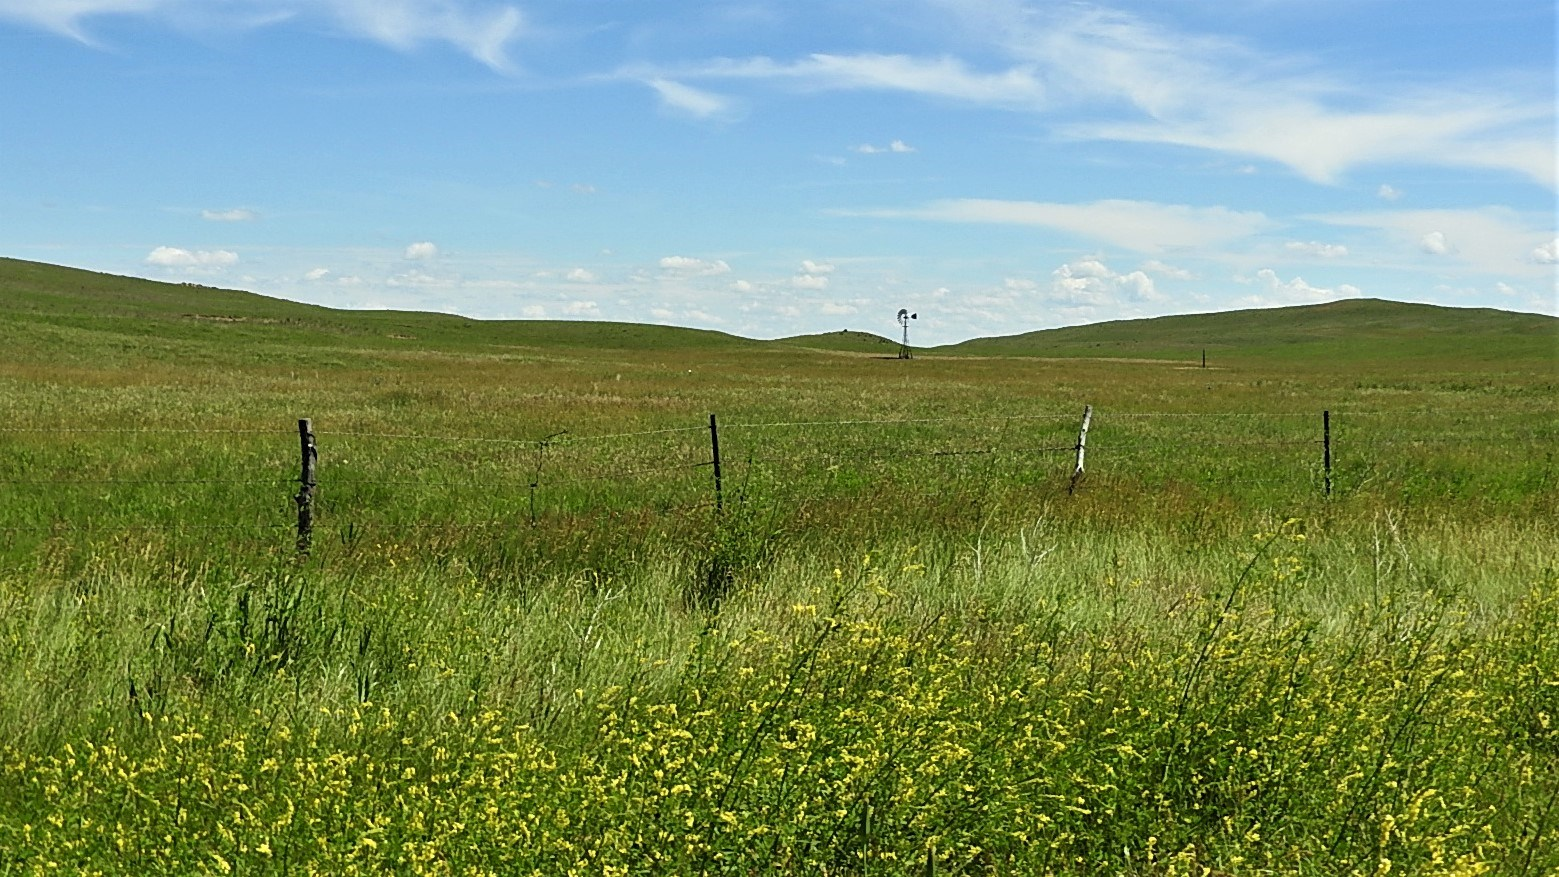 NEBRASKA SANDHILLS RANGELAND AND ELK BREEDING PASTURE